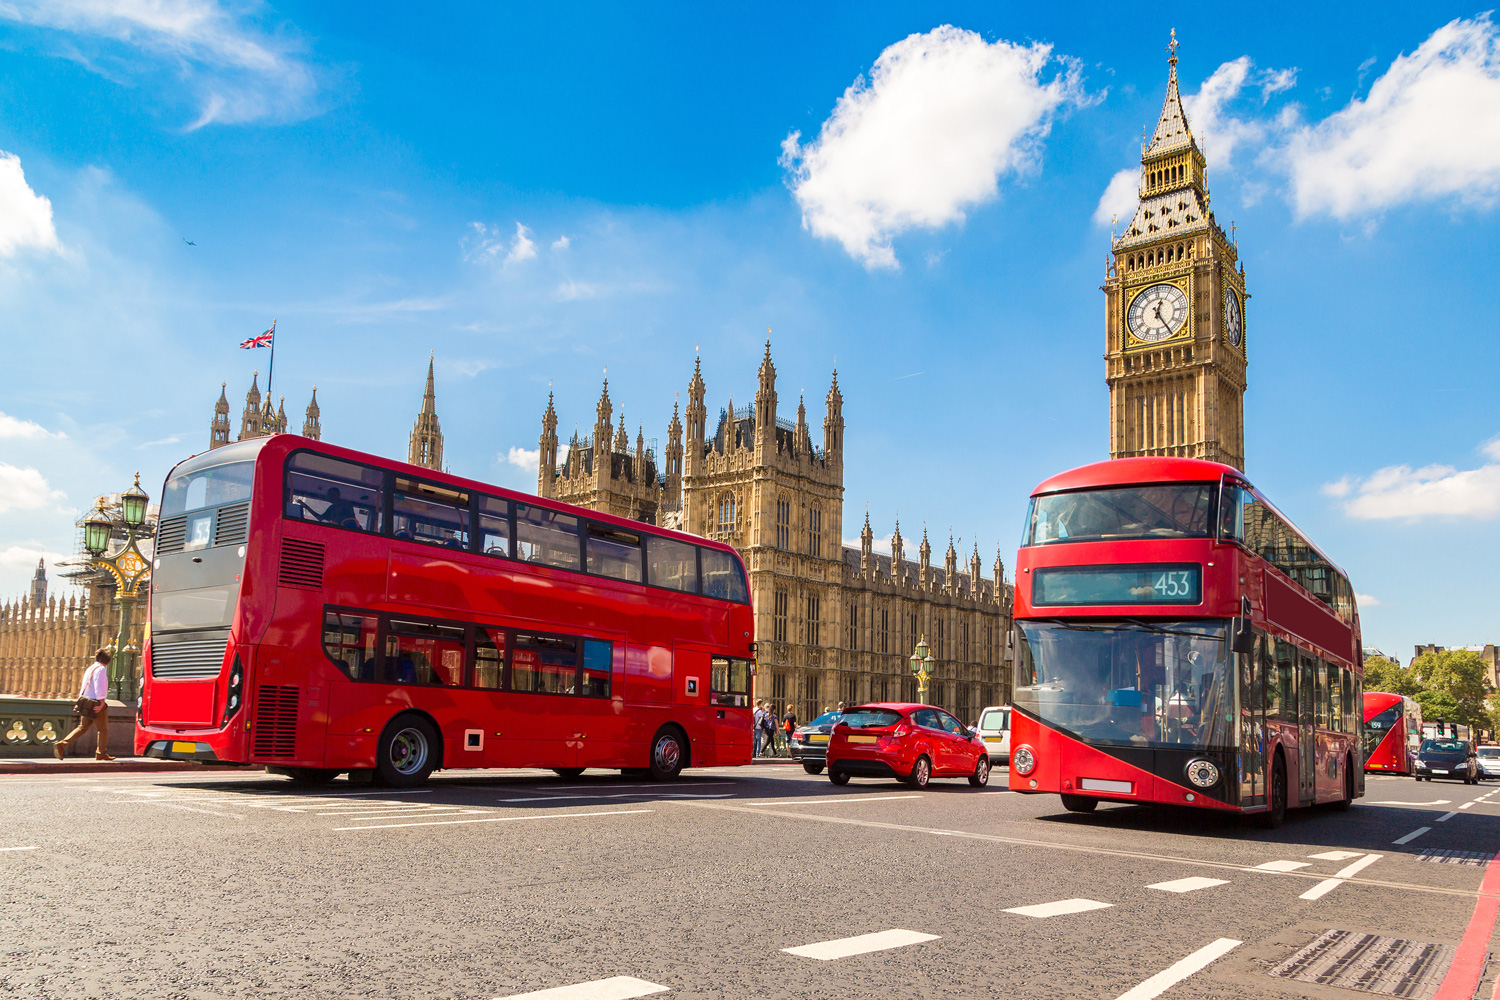 Iconic London red bus driving on Westminster Bridge past Big Ben, in London, England